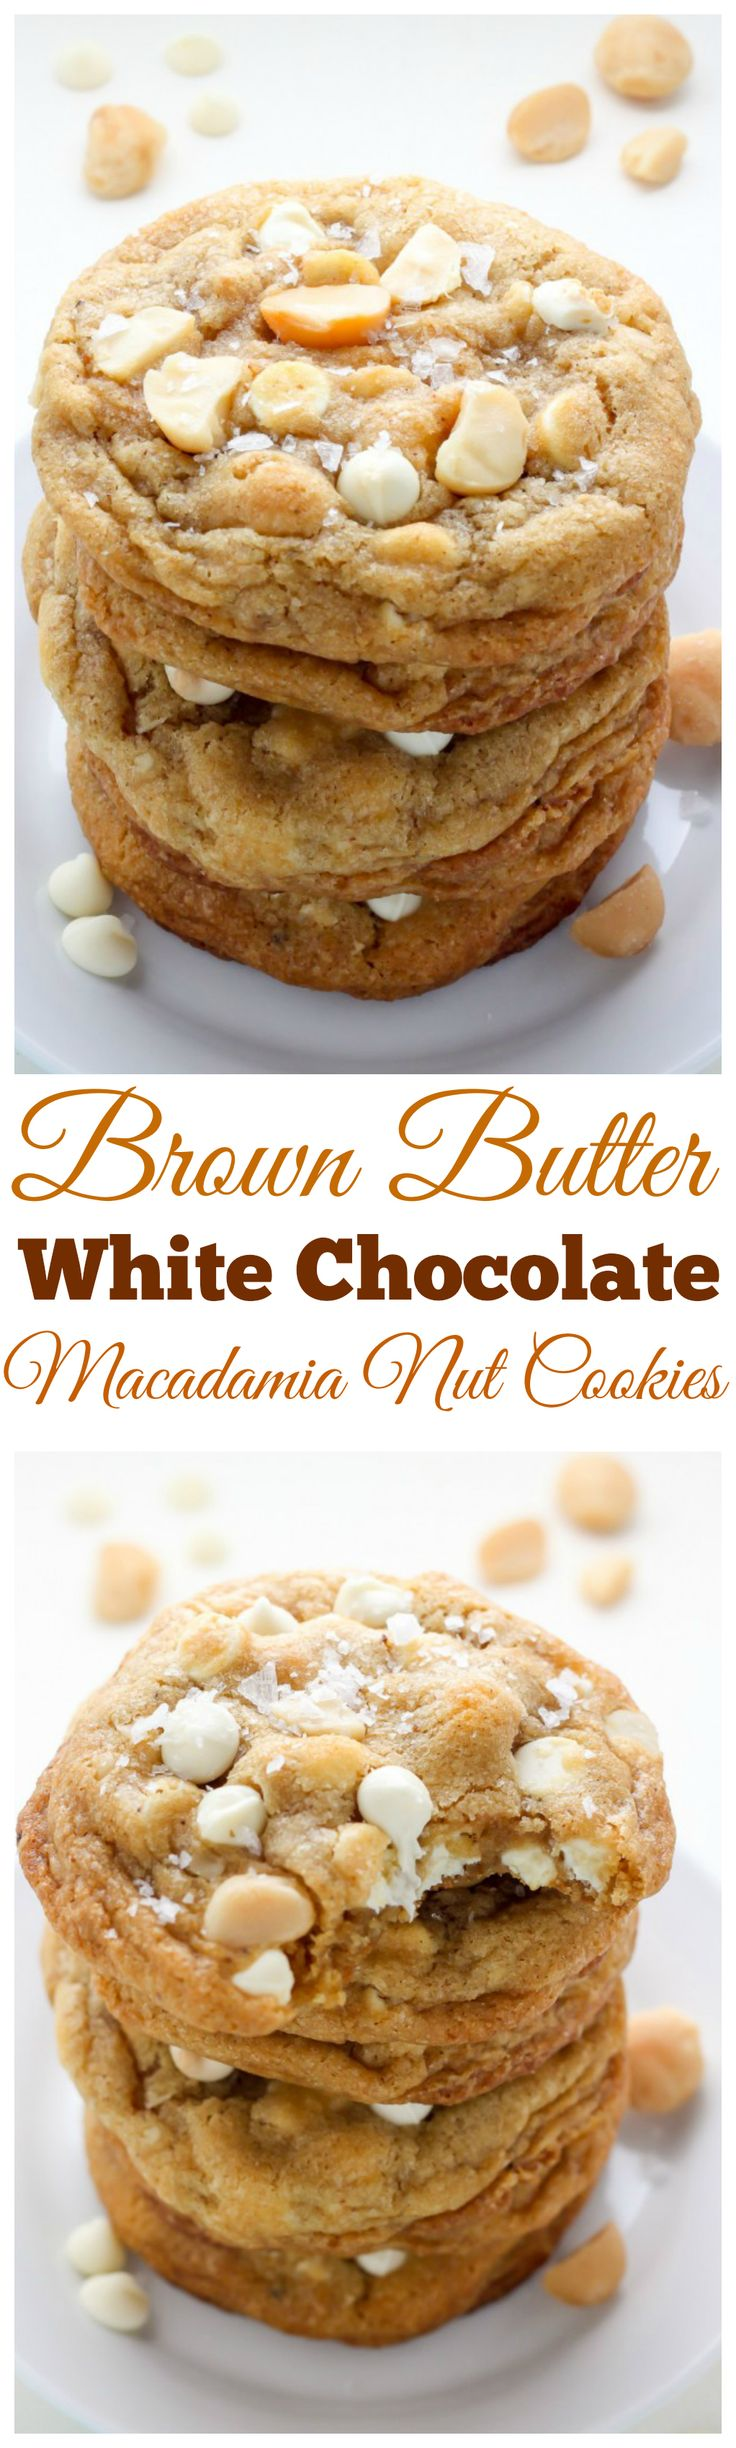 Brown Butter White Chocolate Macadamia Nut Cookies. I love the base of this cookie but think personally would omit the white chocolate and possibly the macadamia nuts and replace with other options.